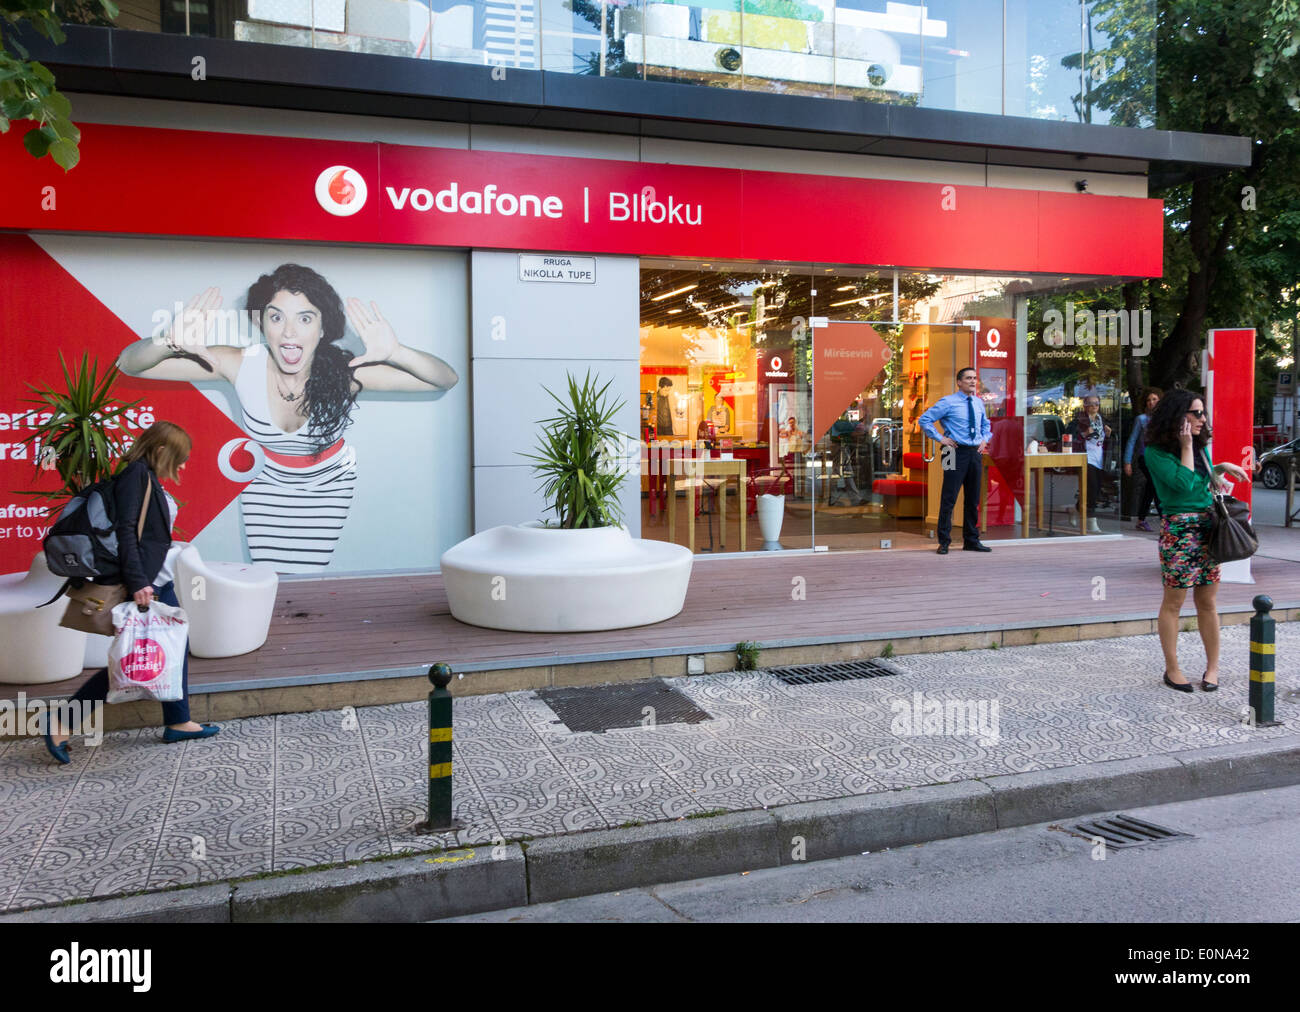 Vodafone outlet, Blloku district, Tirana, Albania - Stock Image